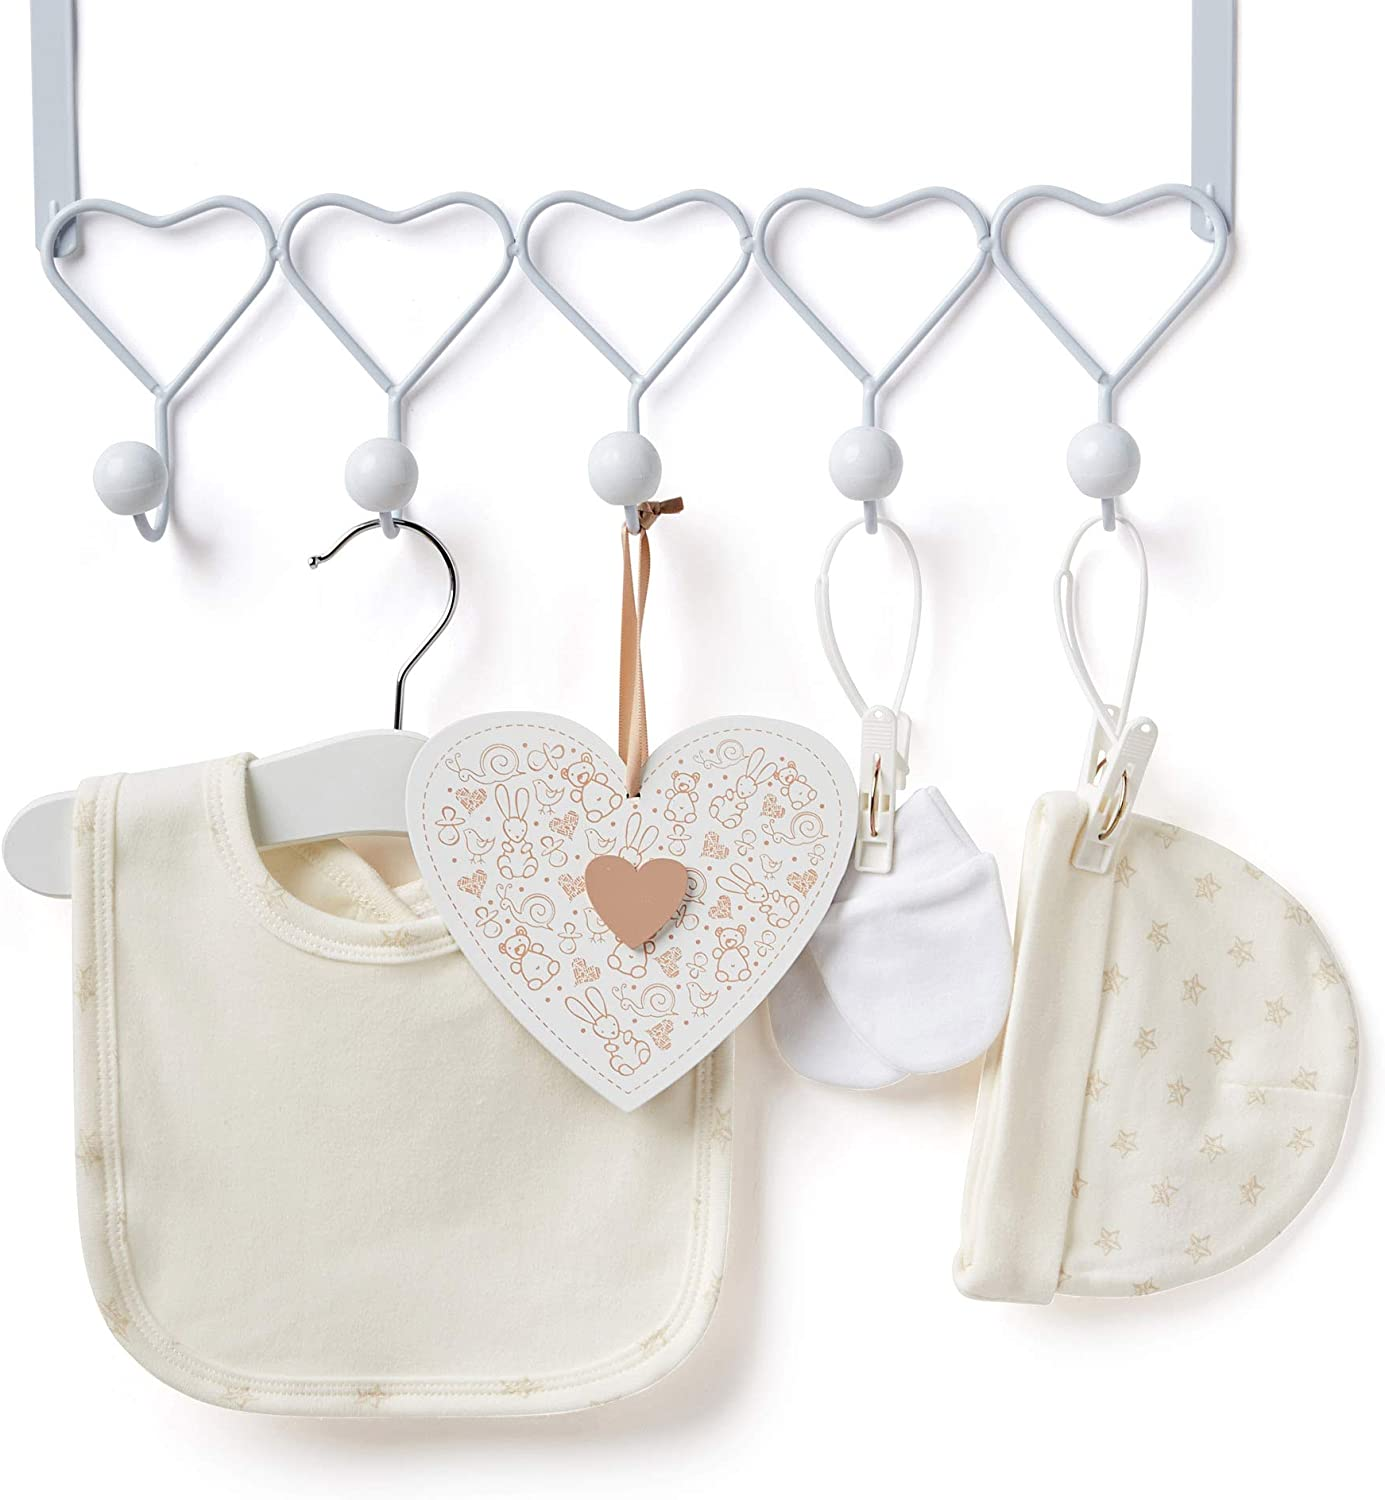 Baby Shower Hamper for Baby Girl with Baby Gifts Including a Rattle Bib Hanging Plaque Mitts and Hat Baby Box Shop Socks